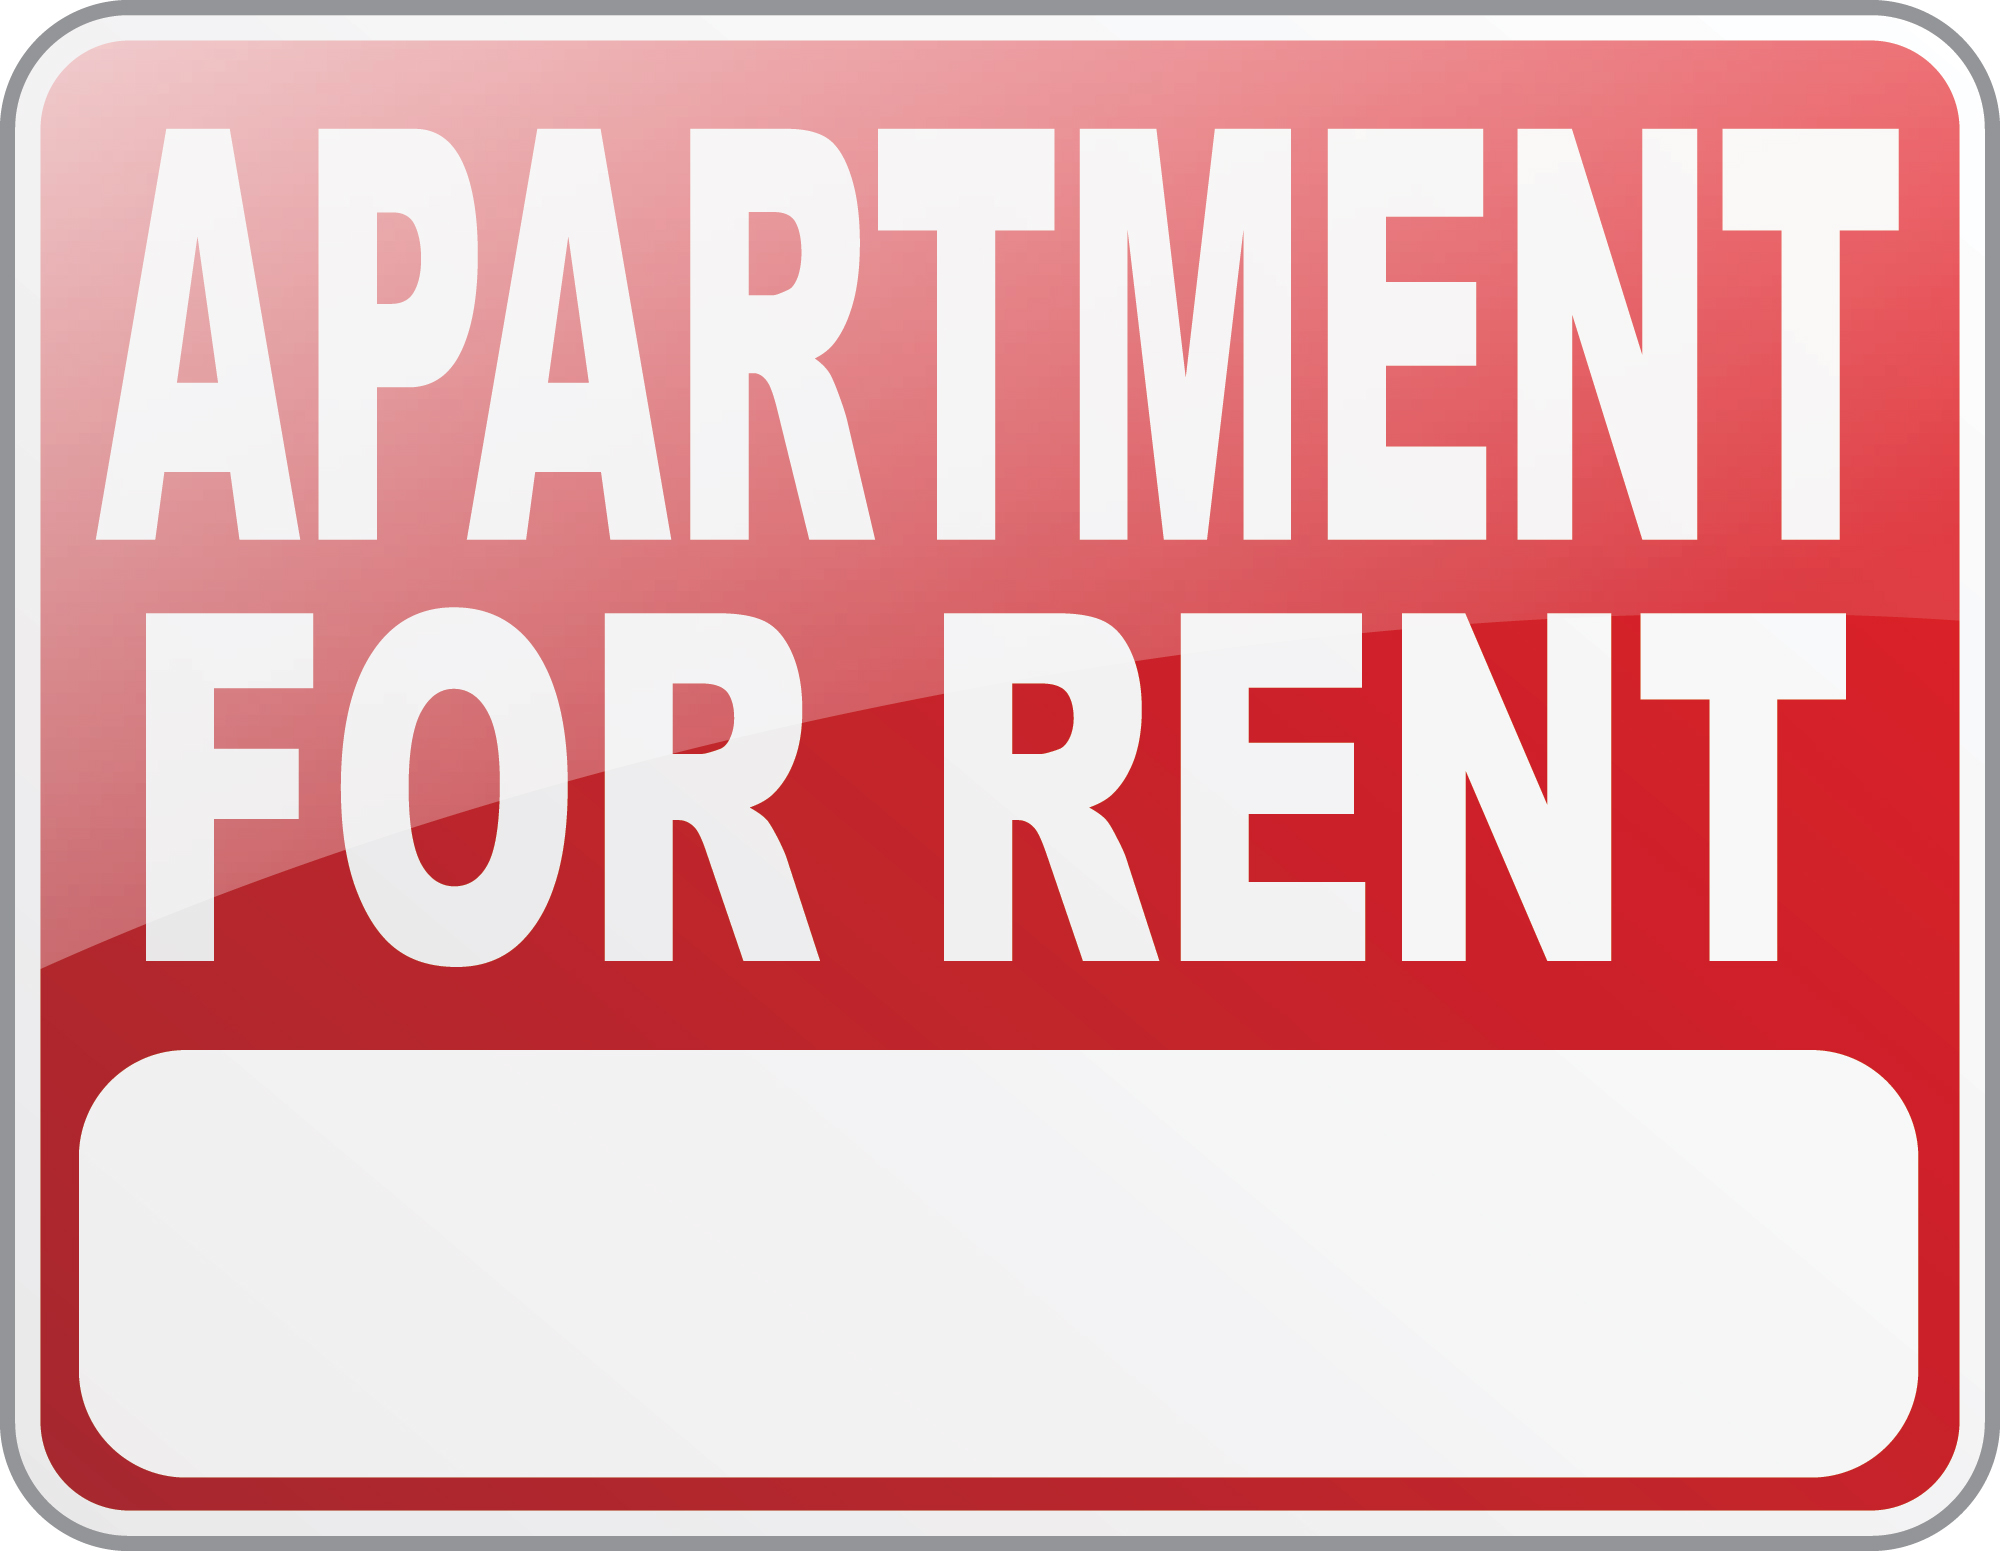 Residential Rental Property Management For Rent Jpg